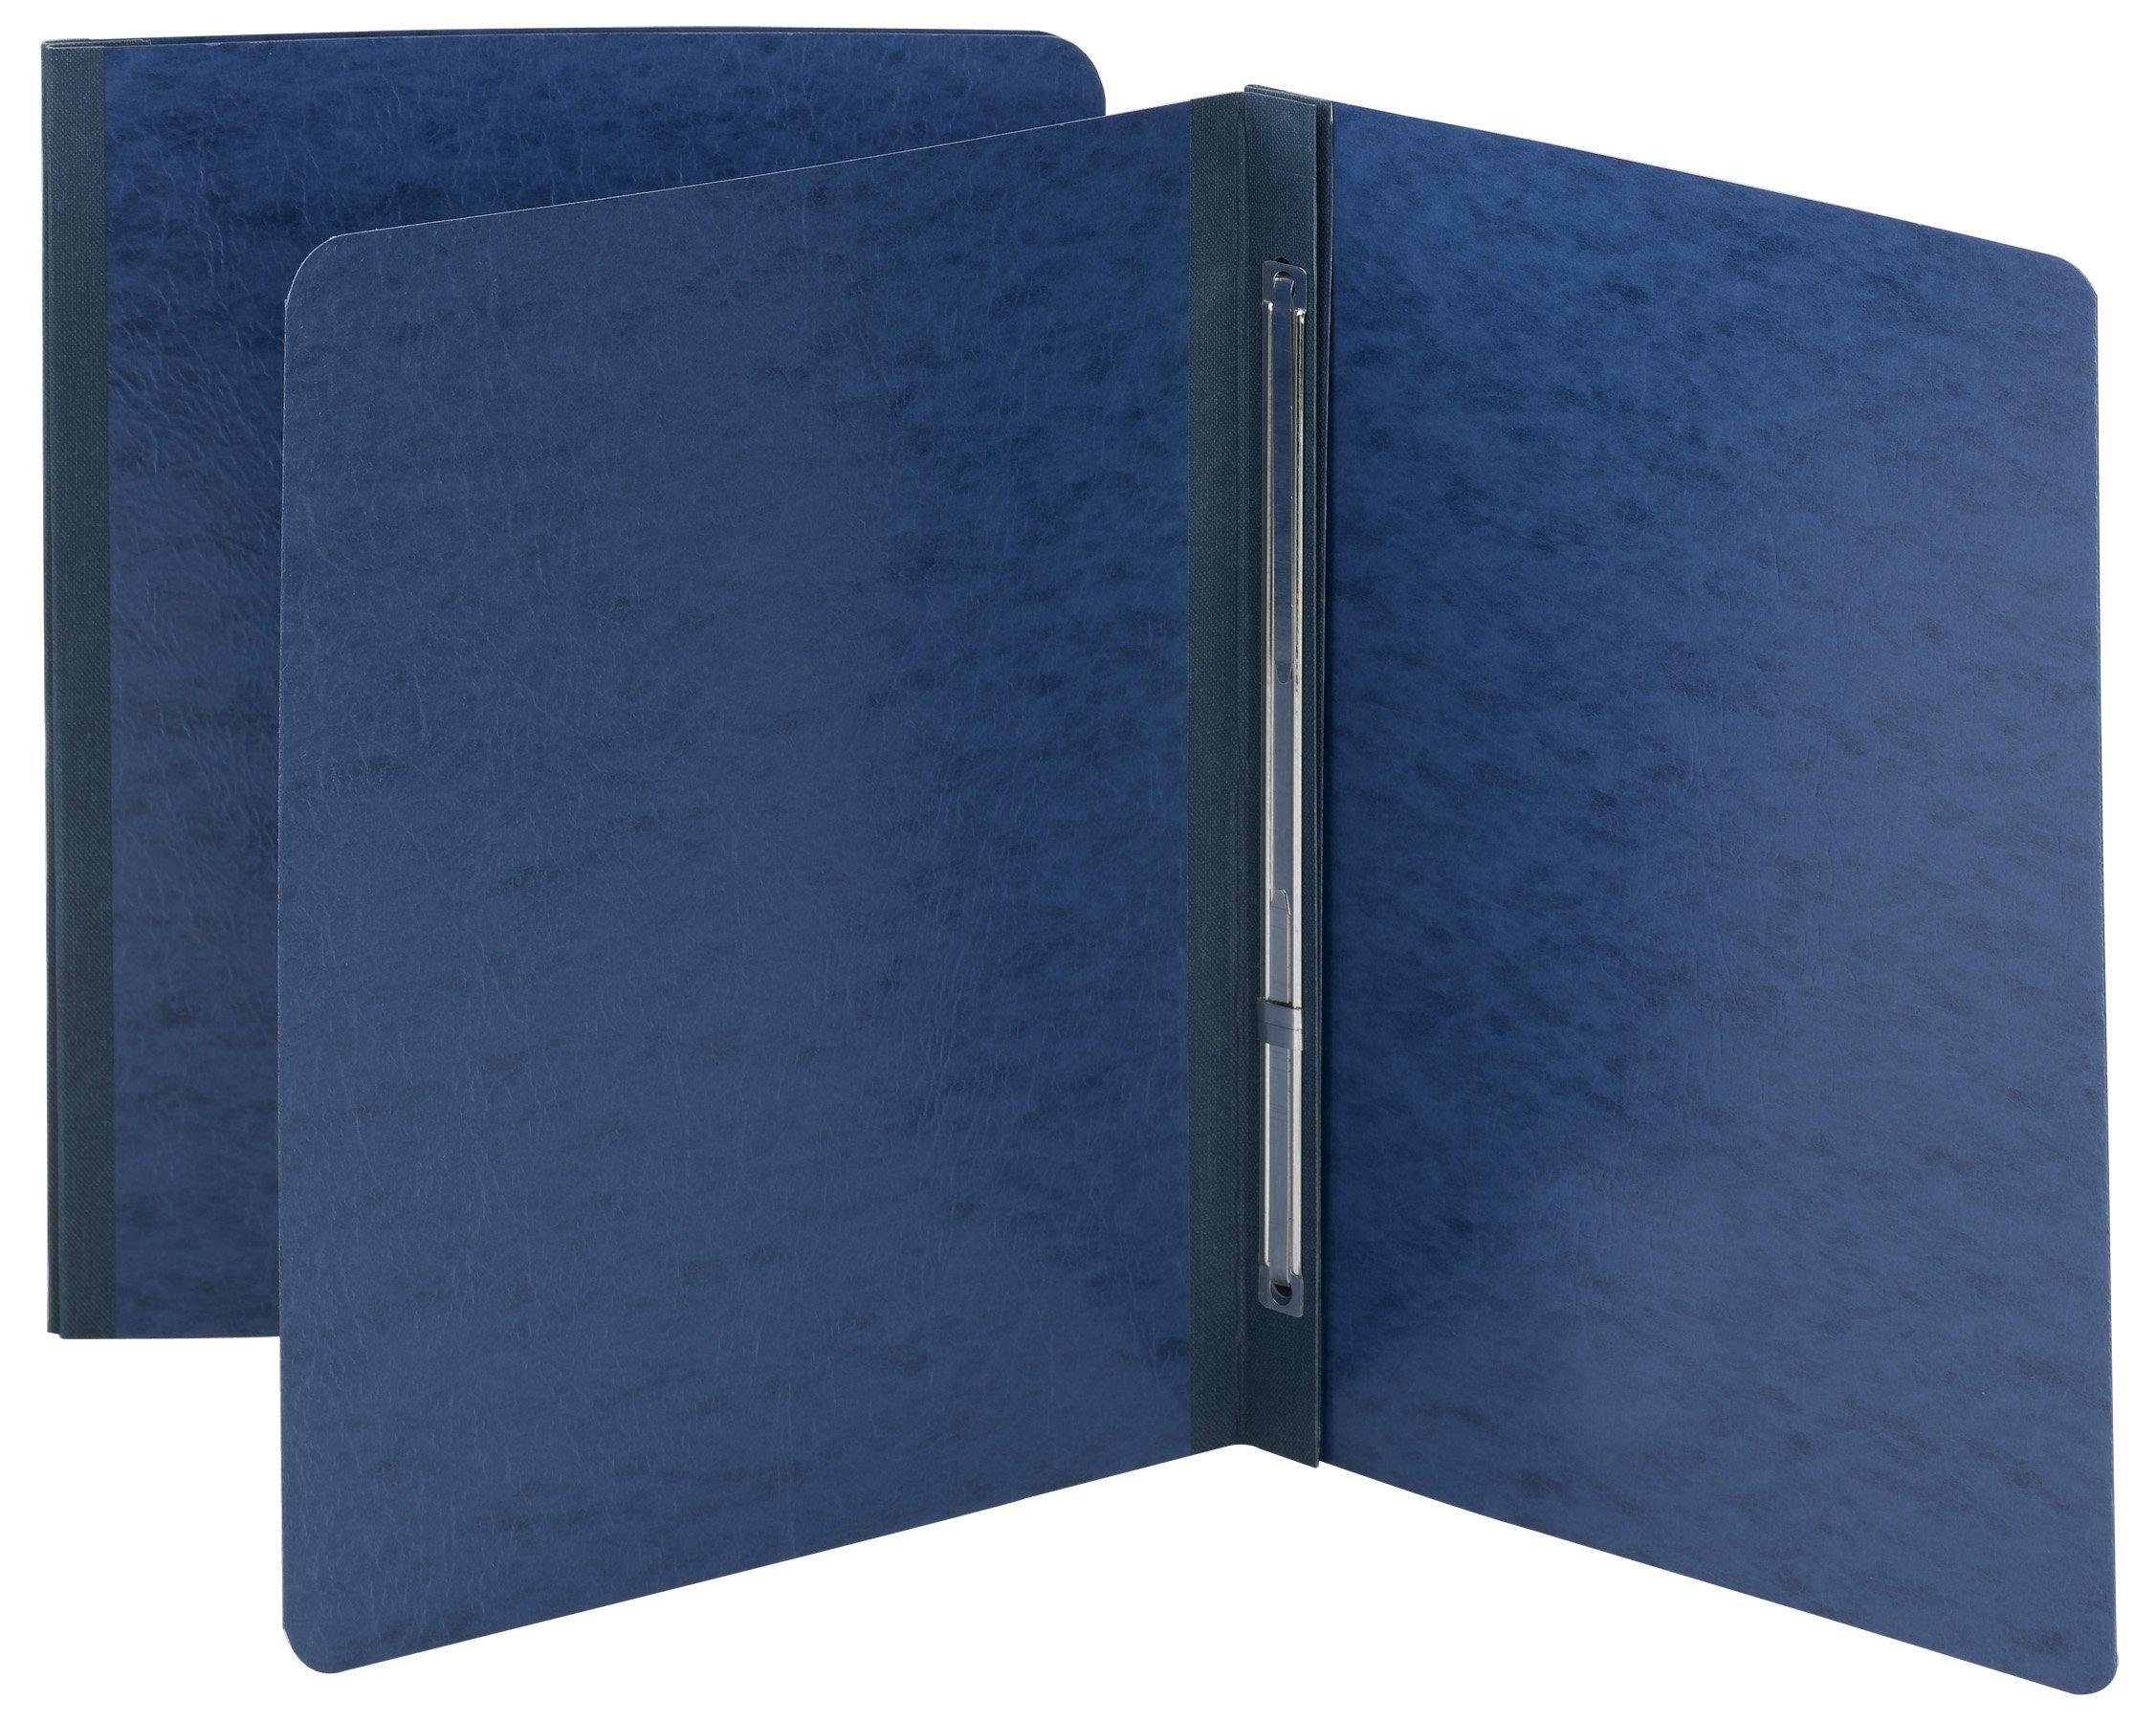 Smead Pressboard Report Cover, Metal Prong with Compressor, Side Fastener, 350 Sheets/3'' Capacity, Letter Size, Dark Blue, 25 per Box (81351)